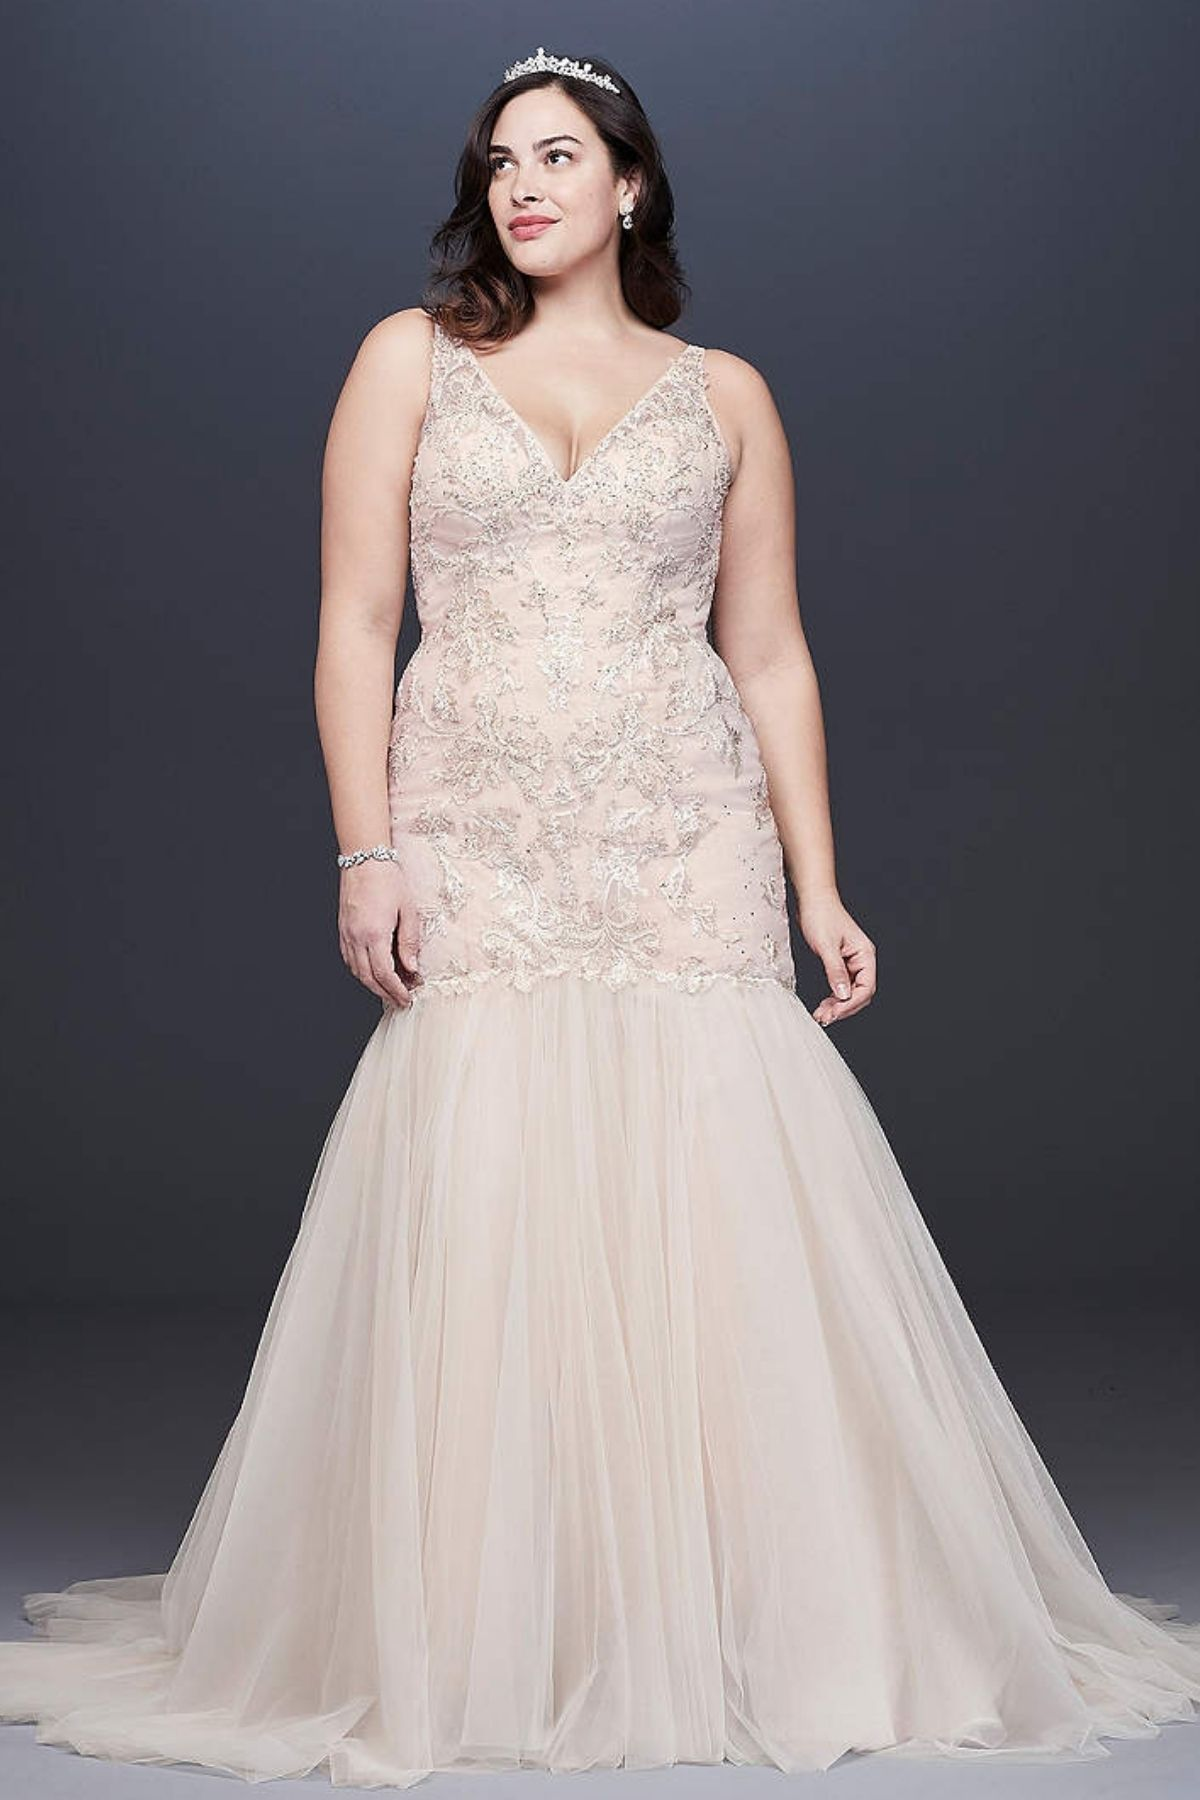 5. Mermaid Beaded Floral Lace Plus Size Wedding Dress